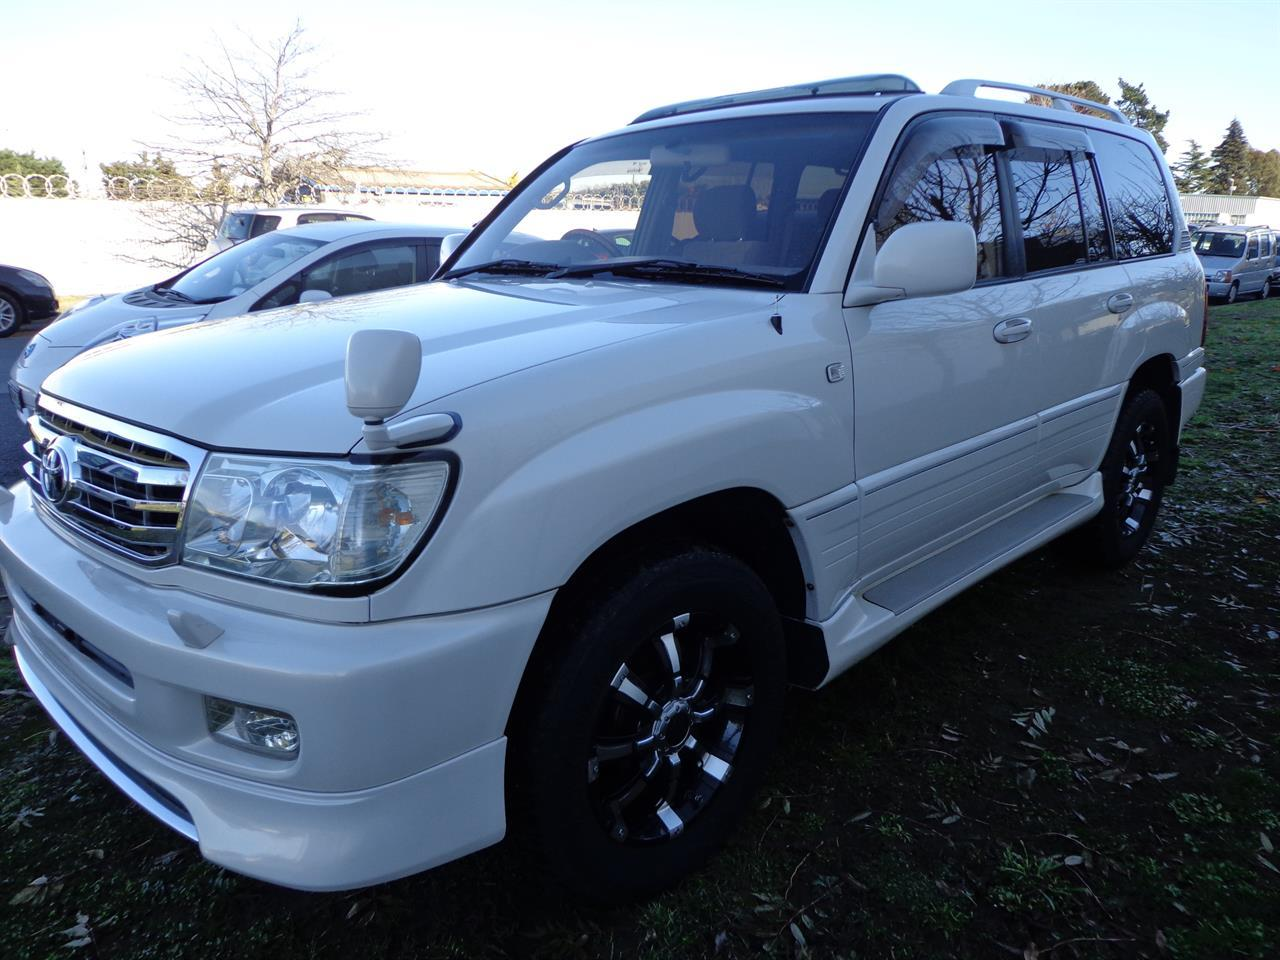 image-7, 2000 Toyota Land Cruiser 100 VX Limited G Selectio at Christchurch